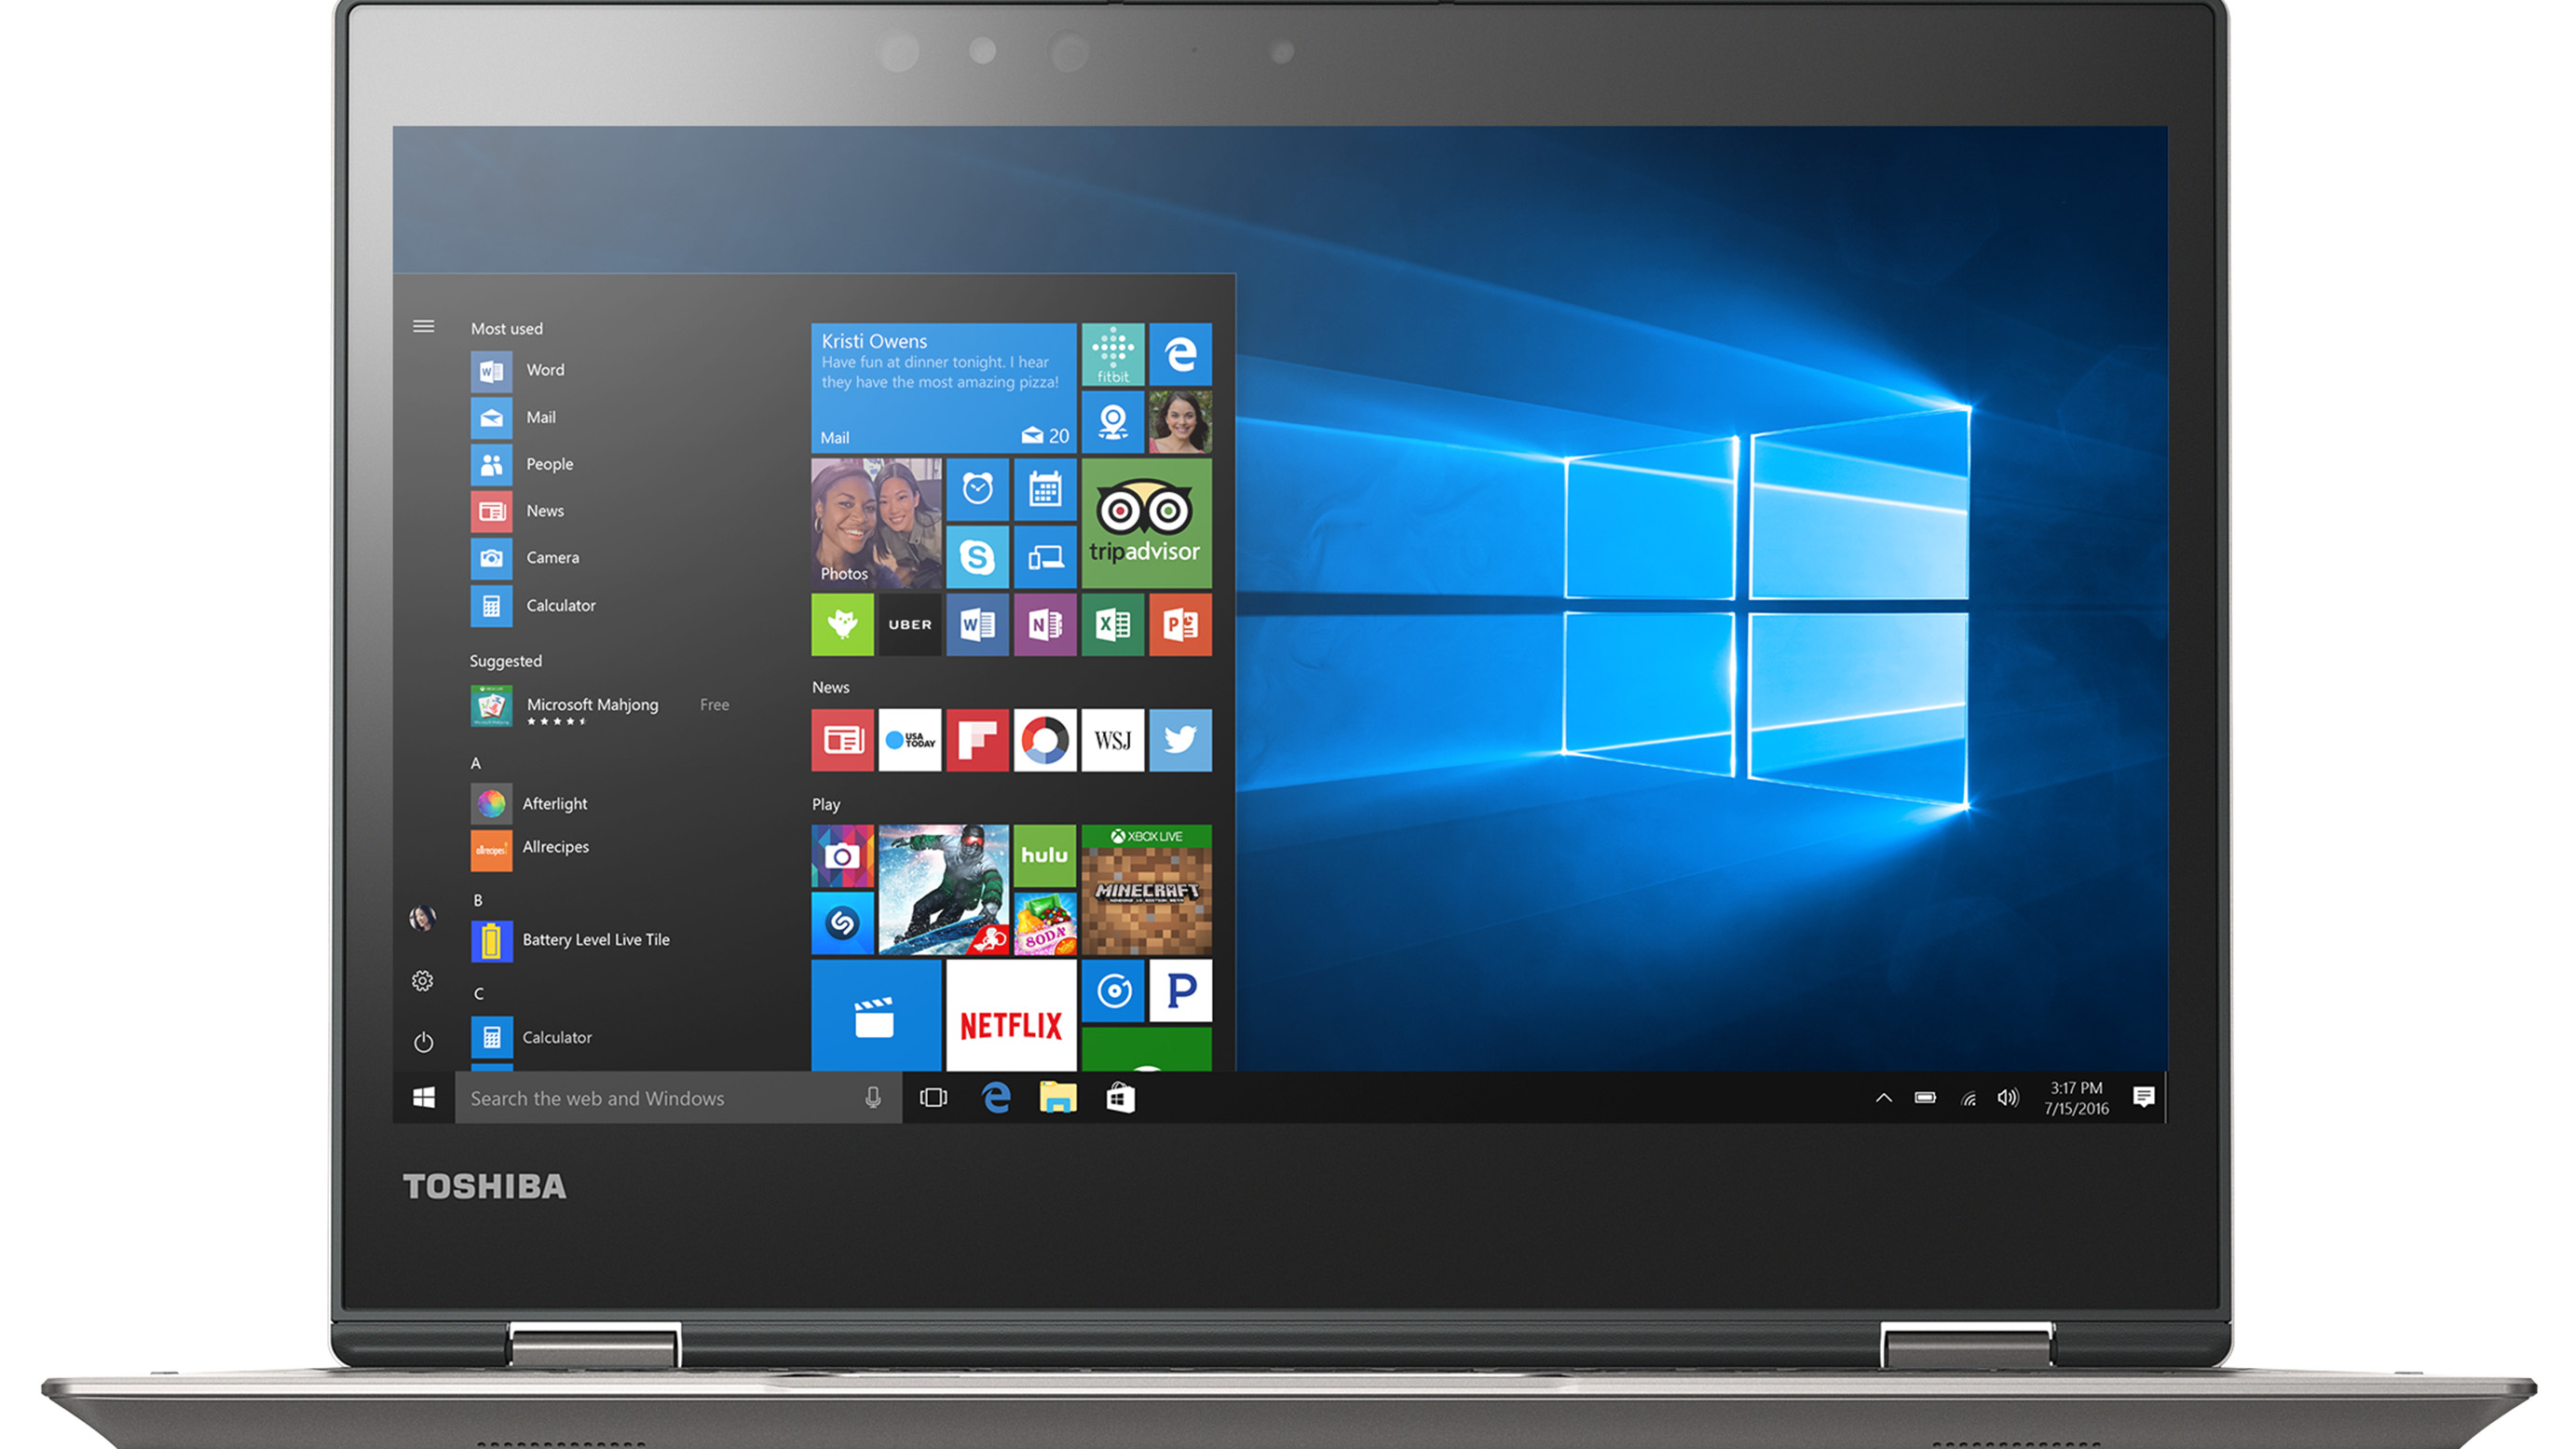 Buy Toshiba Portege X20W 2 in 1 PC - Microsoft Store